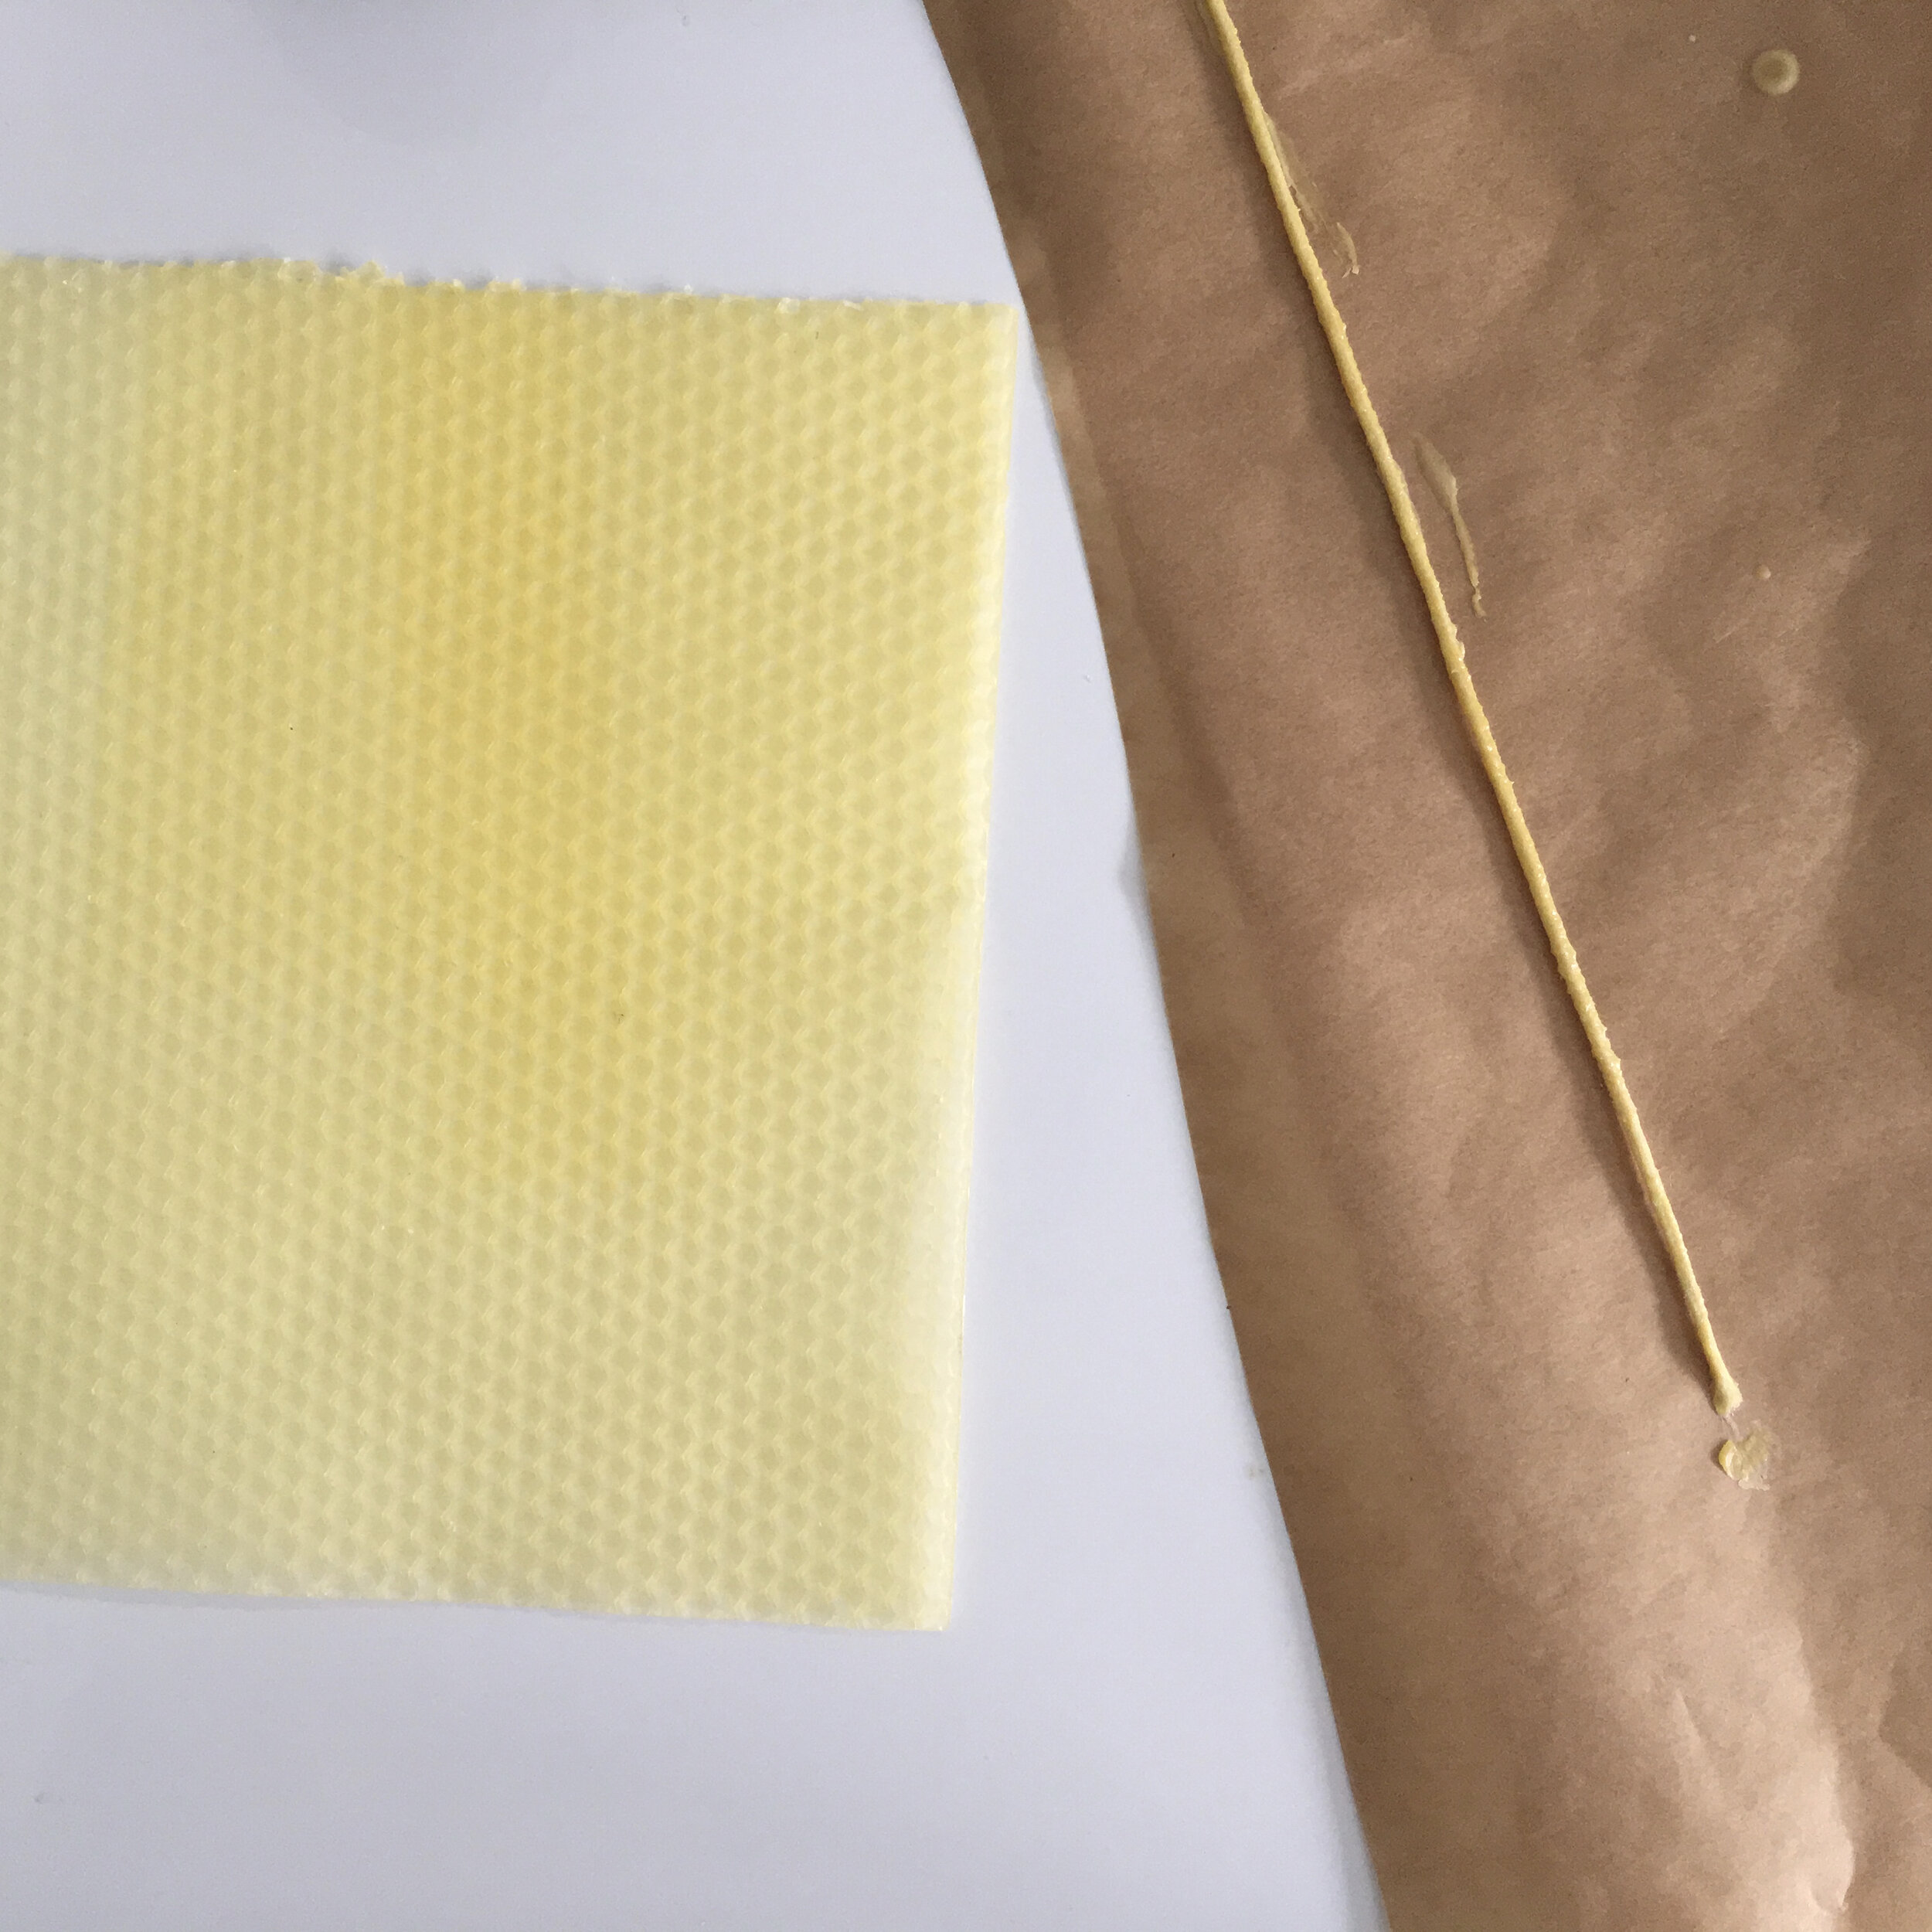 Dip the wick in wax, squeeze out any air and stretch onto some grease-proof paper.